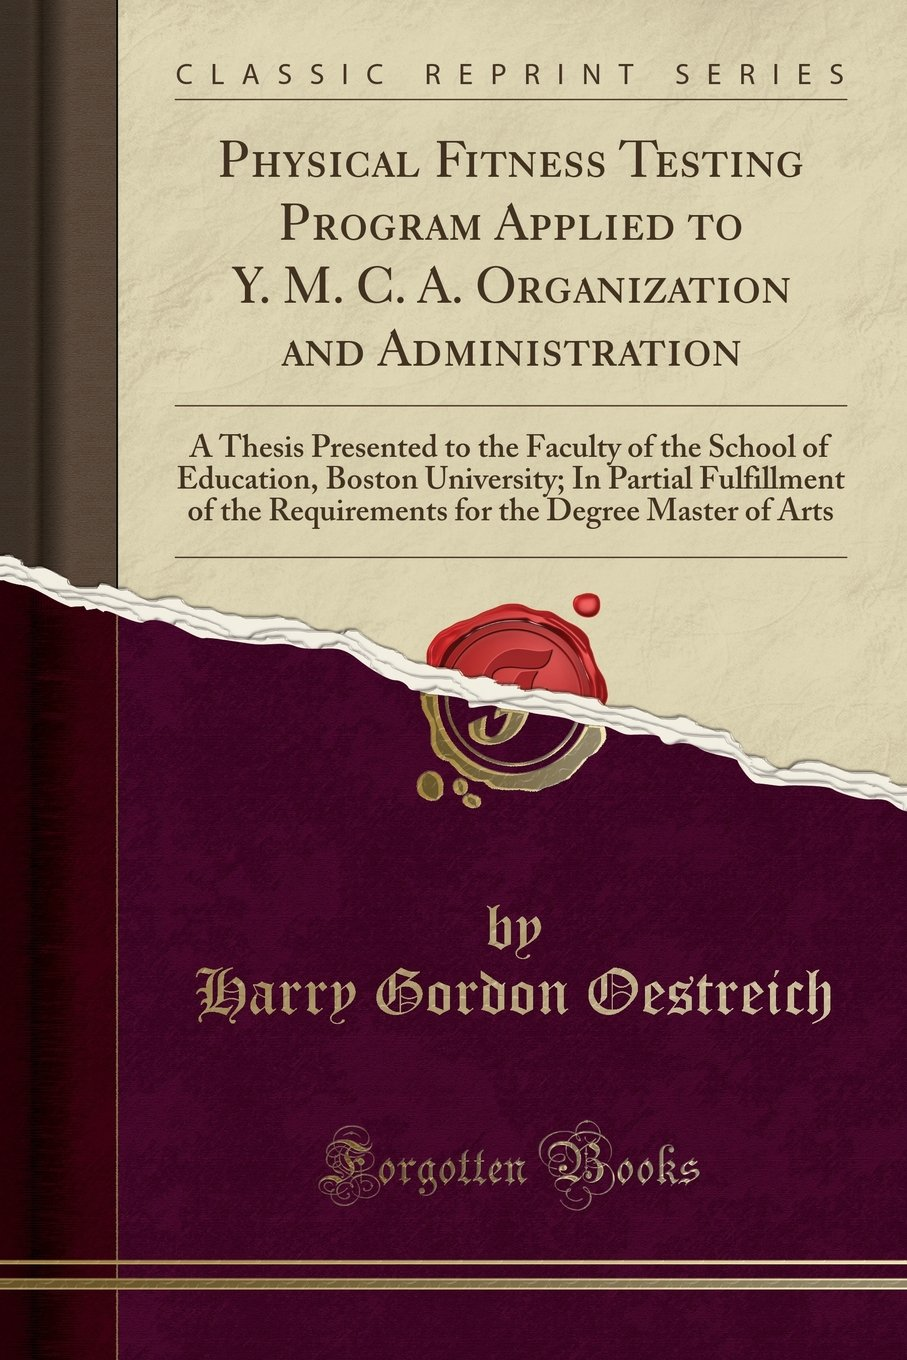 Physical Fitness Testing Program Applied to Y M C A Organization and Administration- A Thesis Presented to the Faculty of the School of Education   Requirements for the Degree Master of Arts ebook by Harry Gordon Oestreich